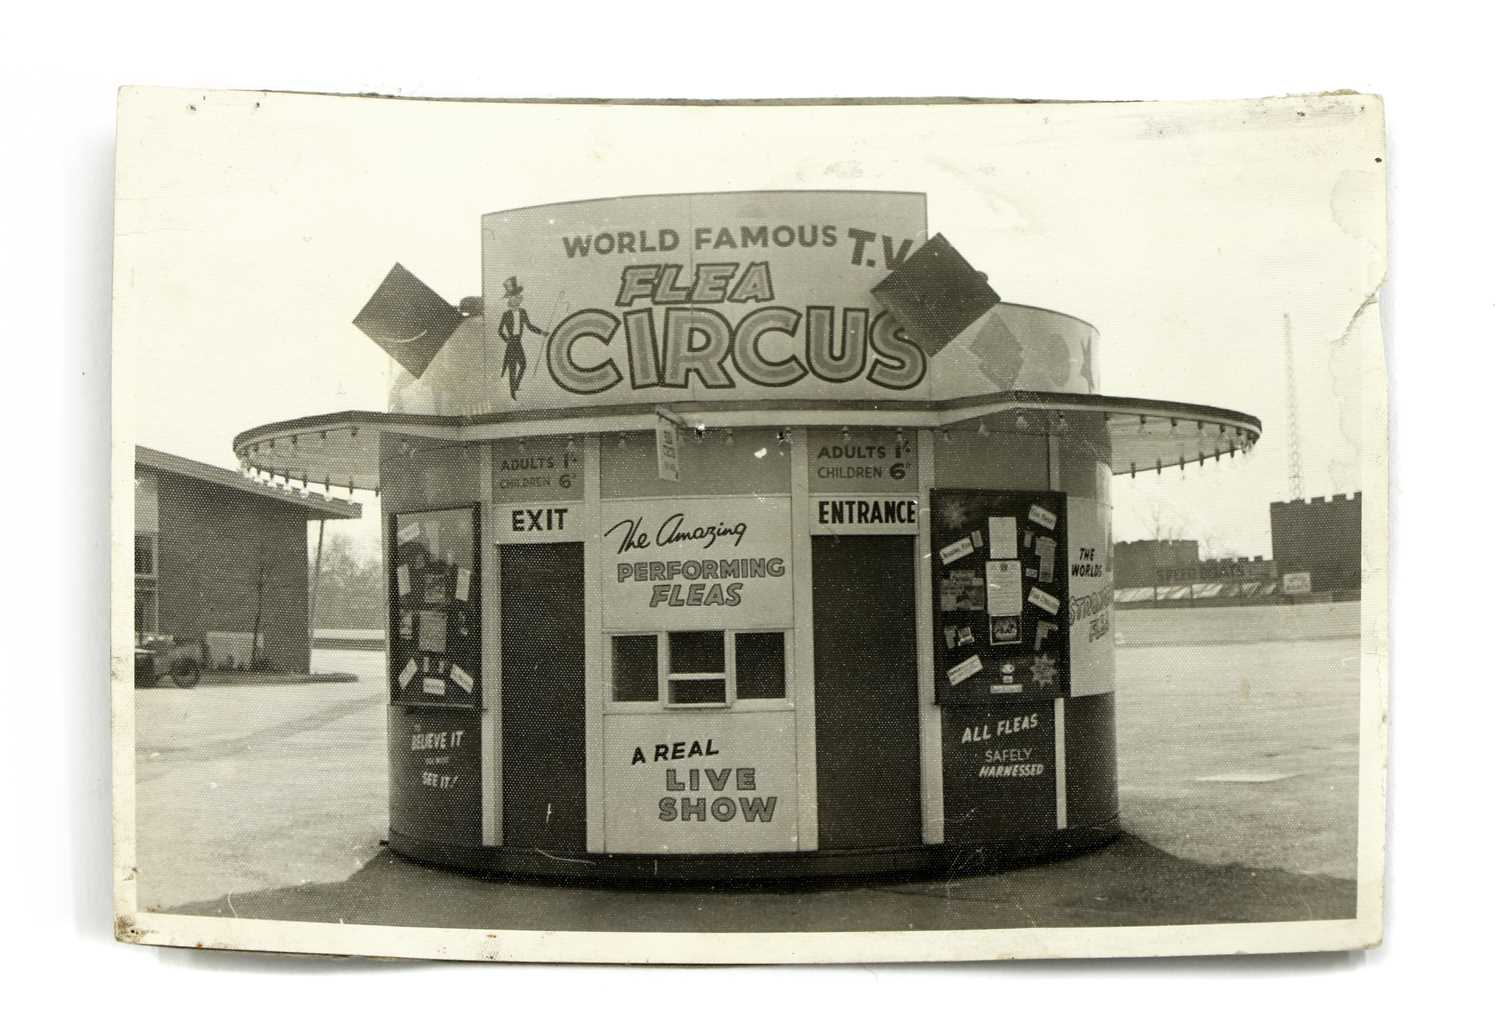 THE WORLD FAMOUS FLEA CIRCUS, - Image 7 of 8